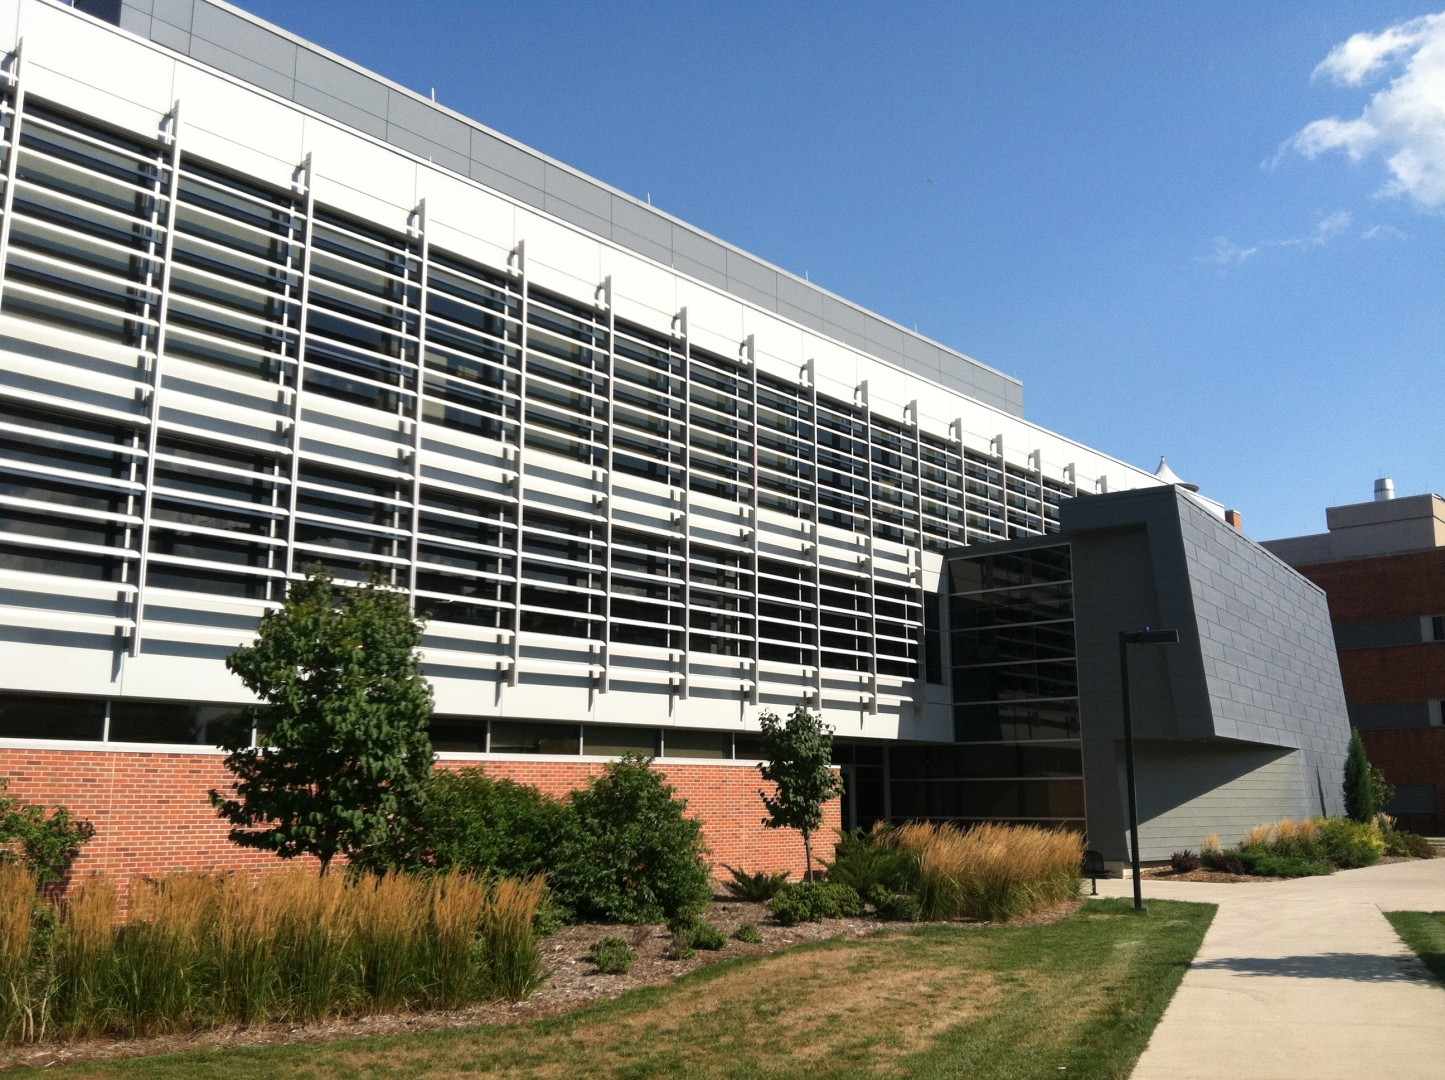 Iowa State University, Coover Hall (Ames)